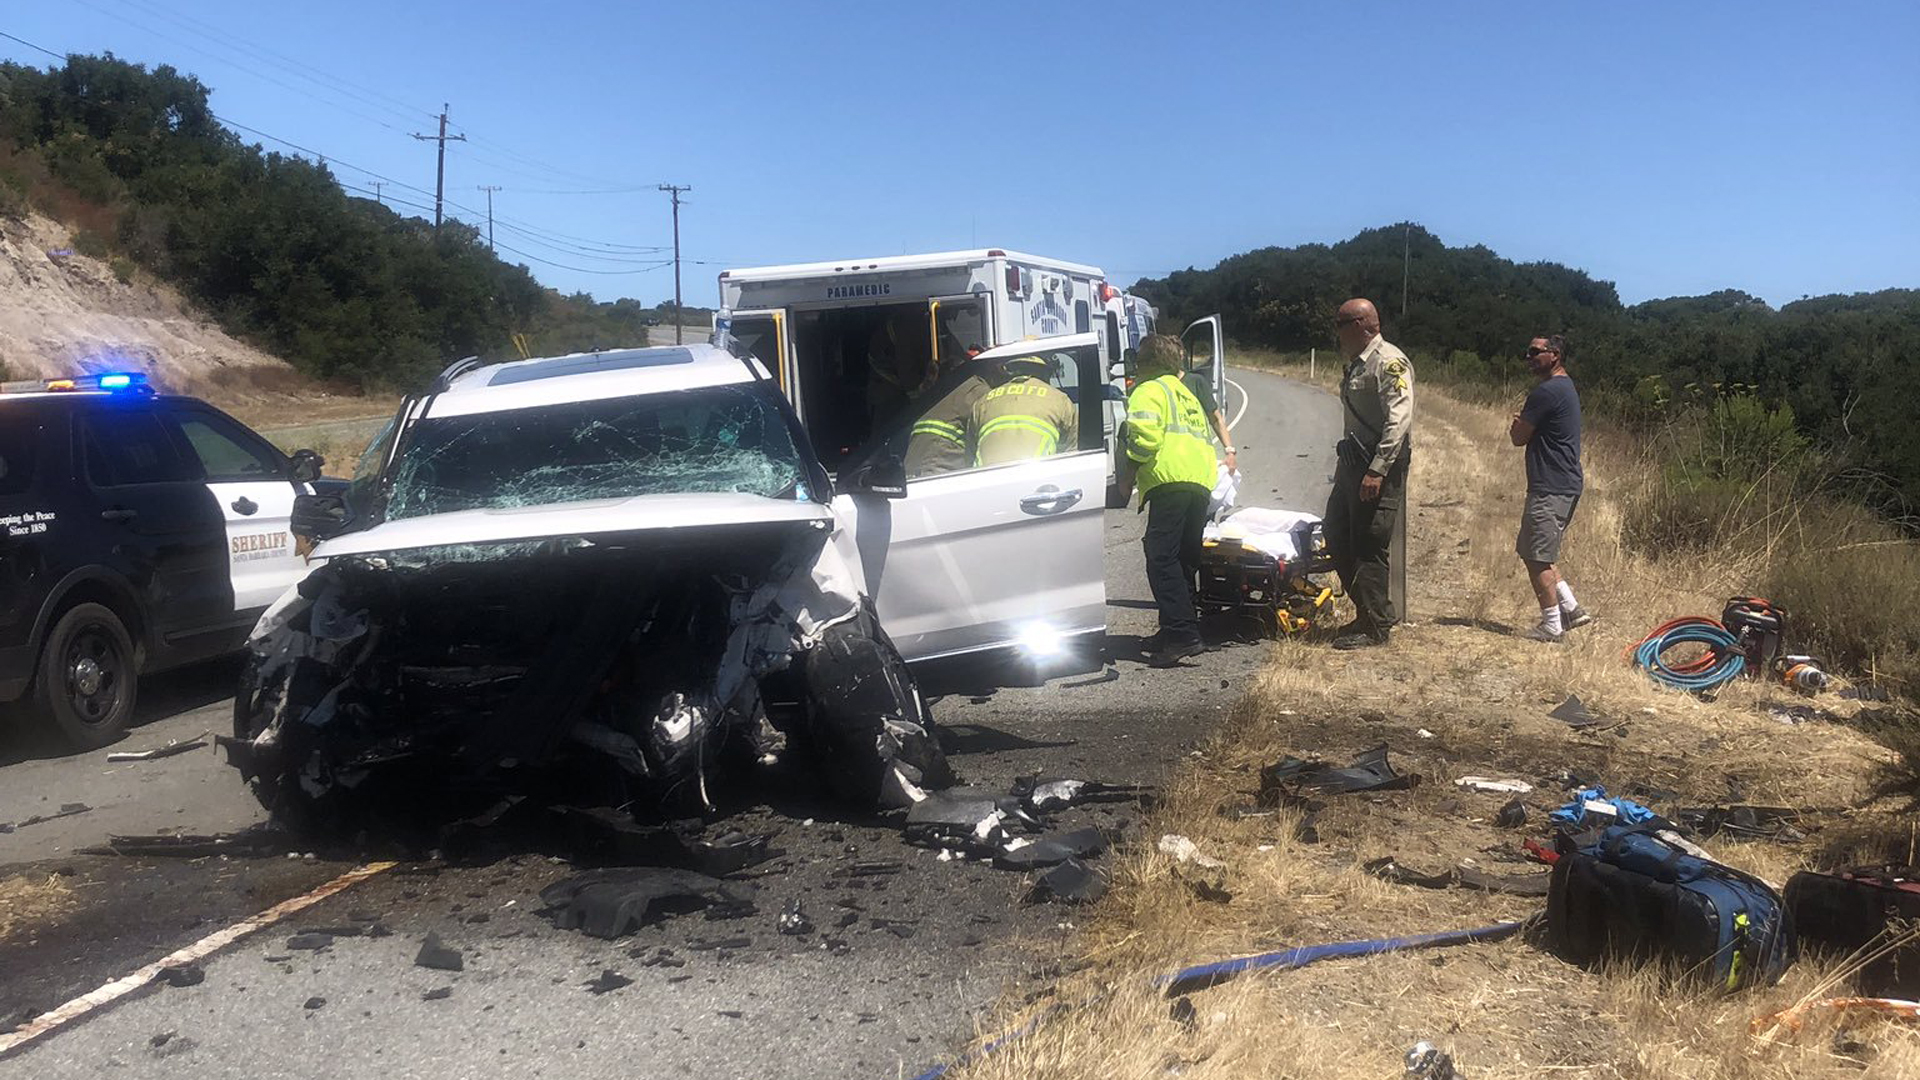 A Ford Explorer is seen badly damaged after a driver slammed into it head-on on Highway 1 in Santa Barbara County on July 26, 2019, in an image released by county fire officials.